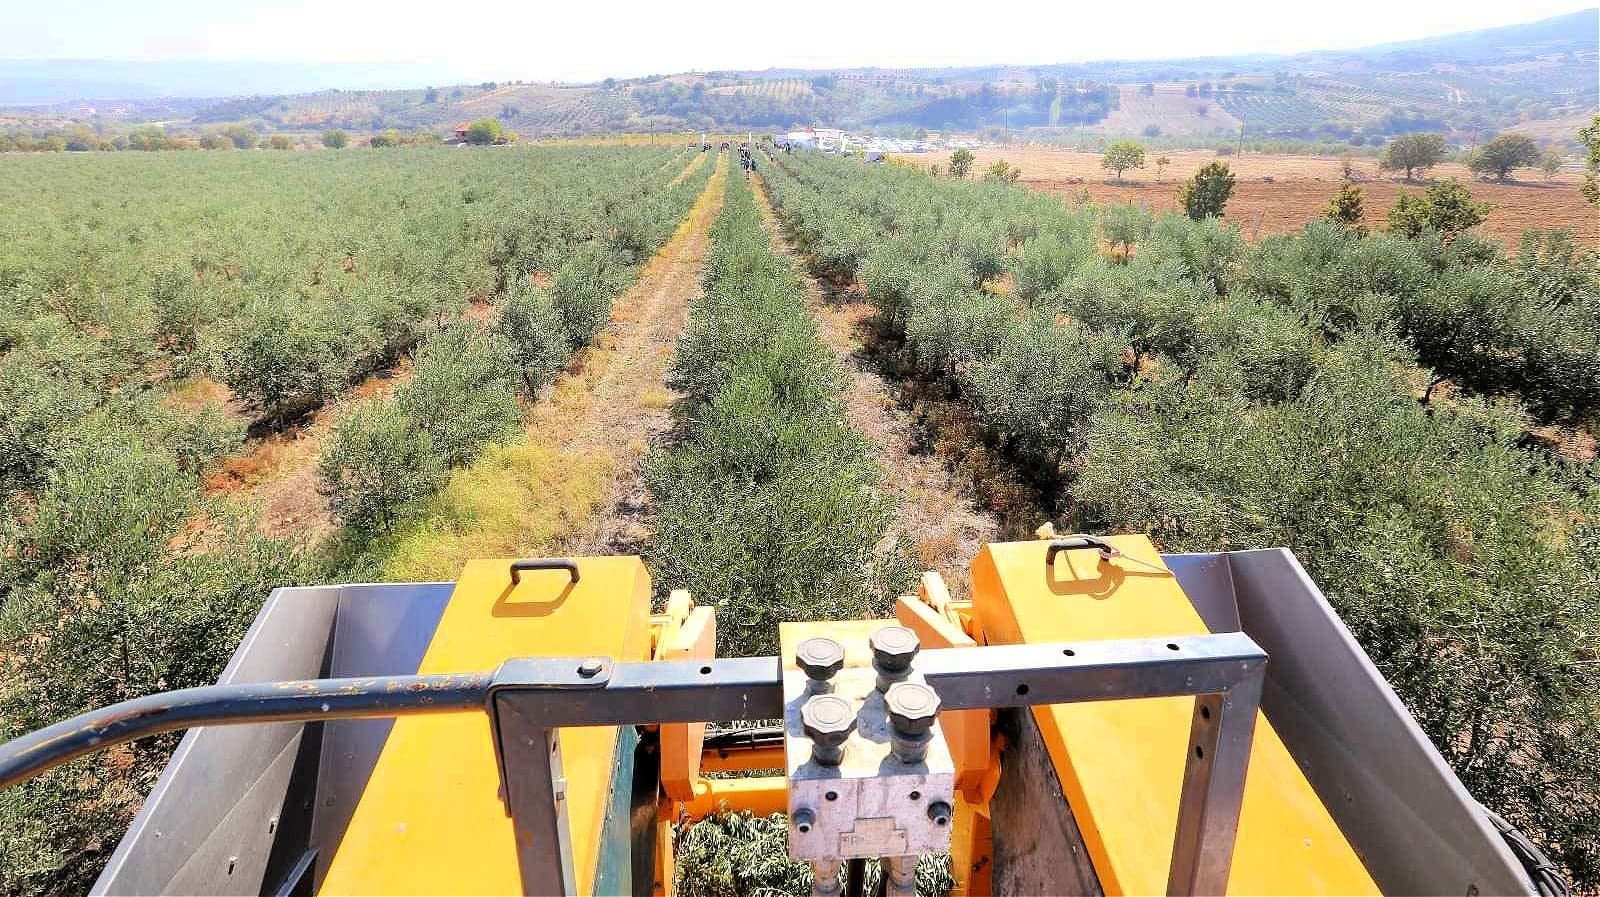 africa-middle-east-competitions-profiles-the-best-olive-oils-turkish-olive-oils-win-acclaim-in-world-competition-olive-oil-times